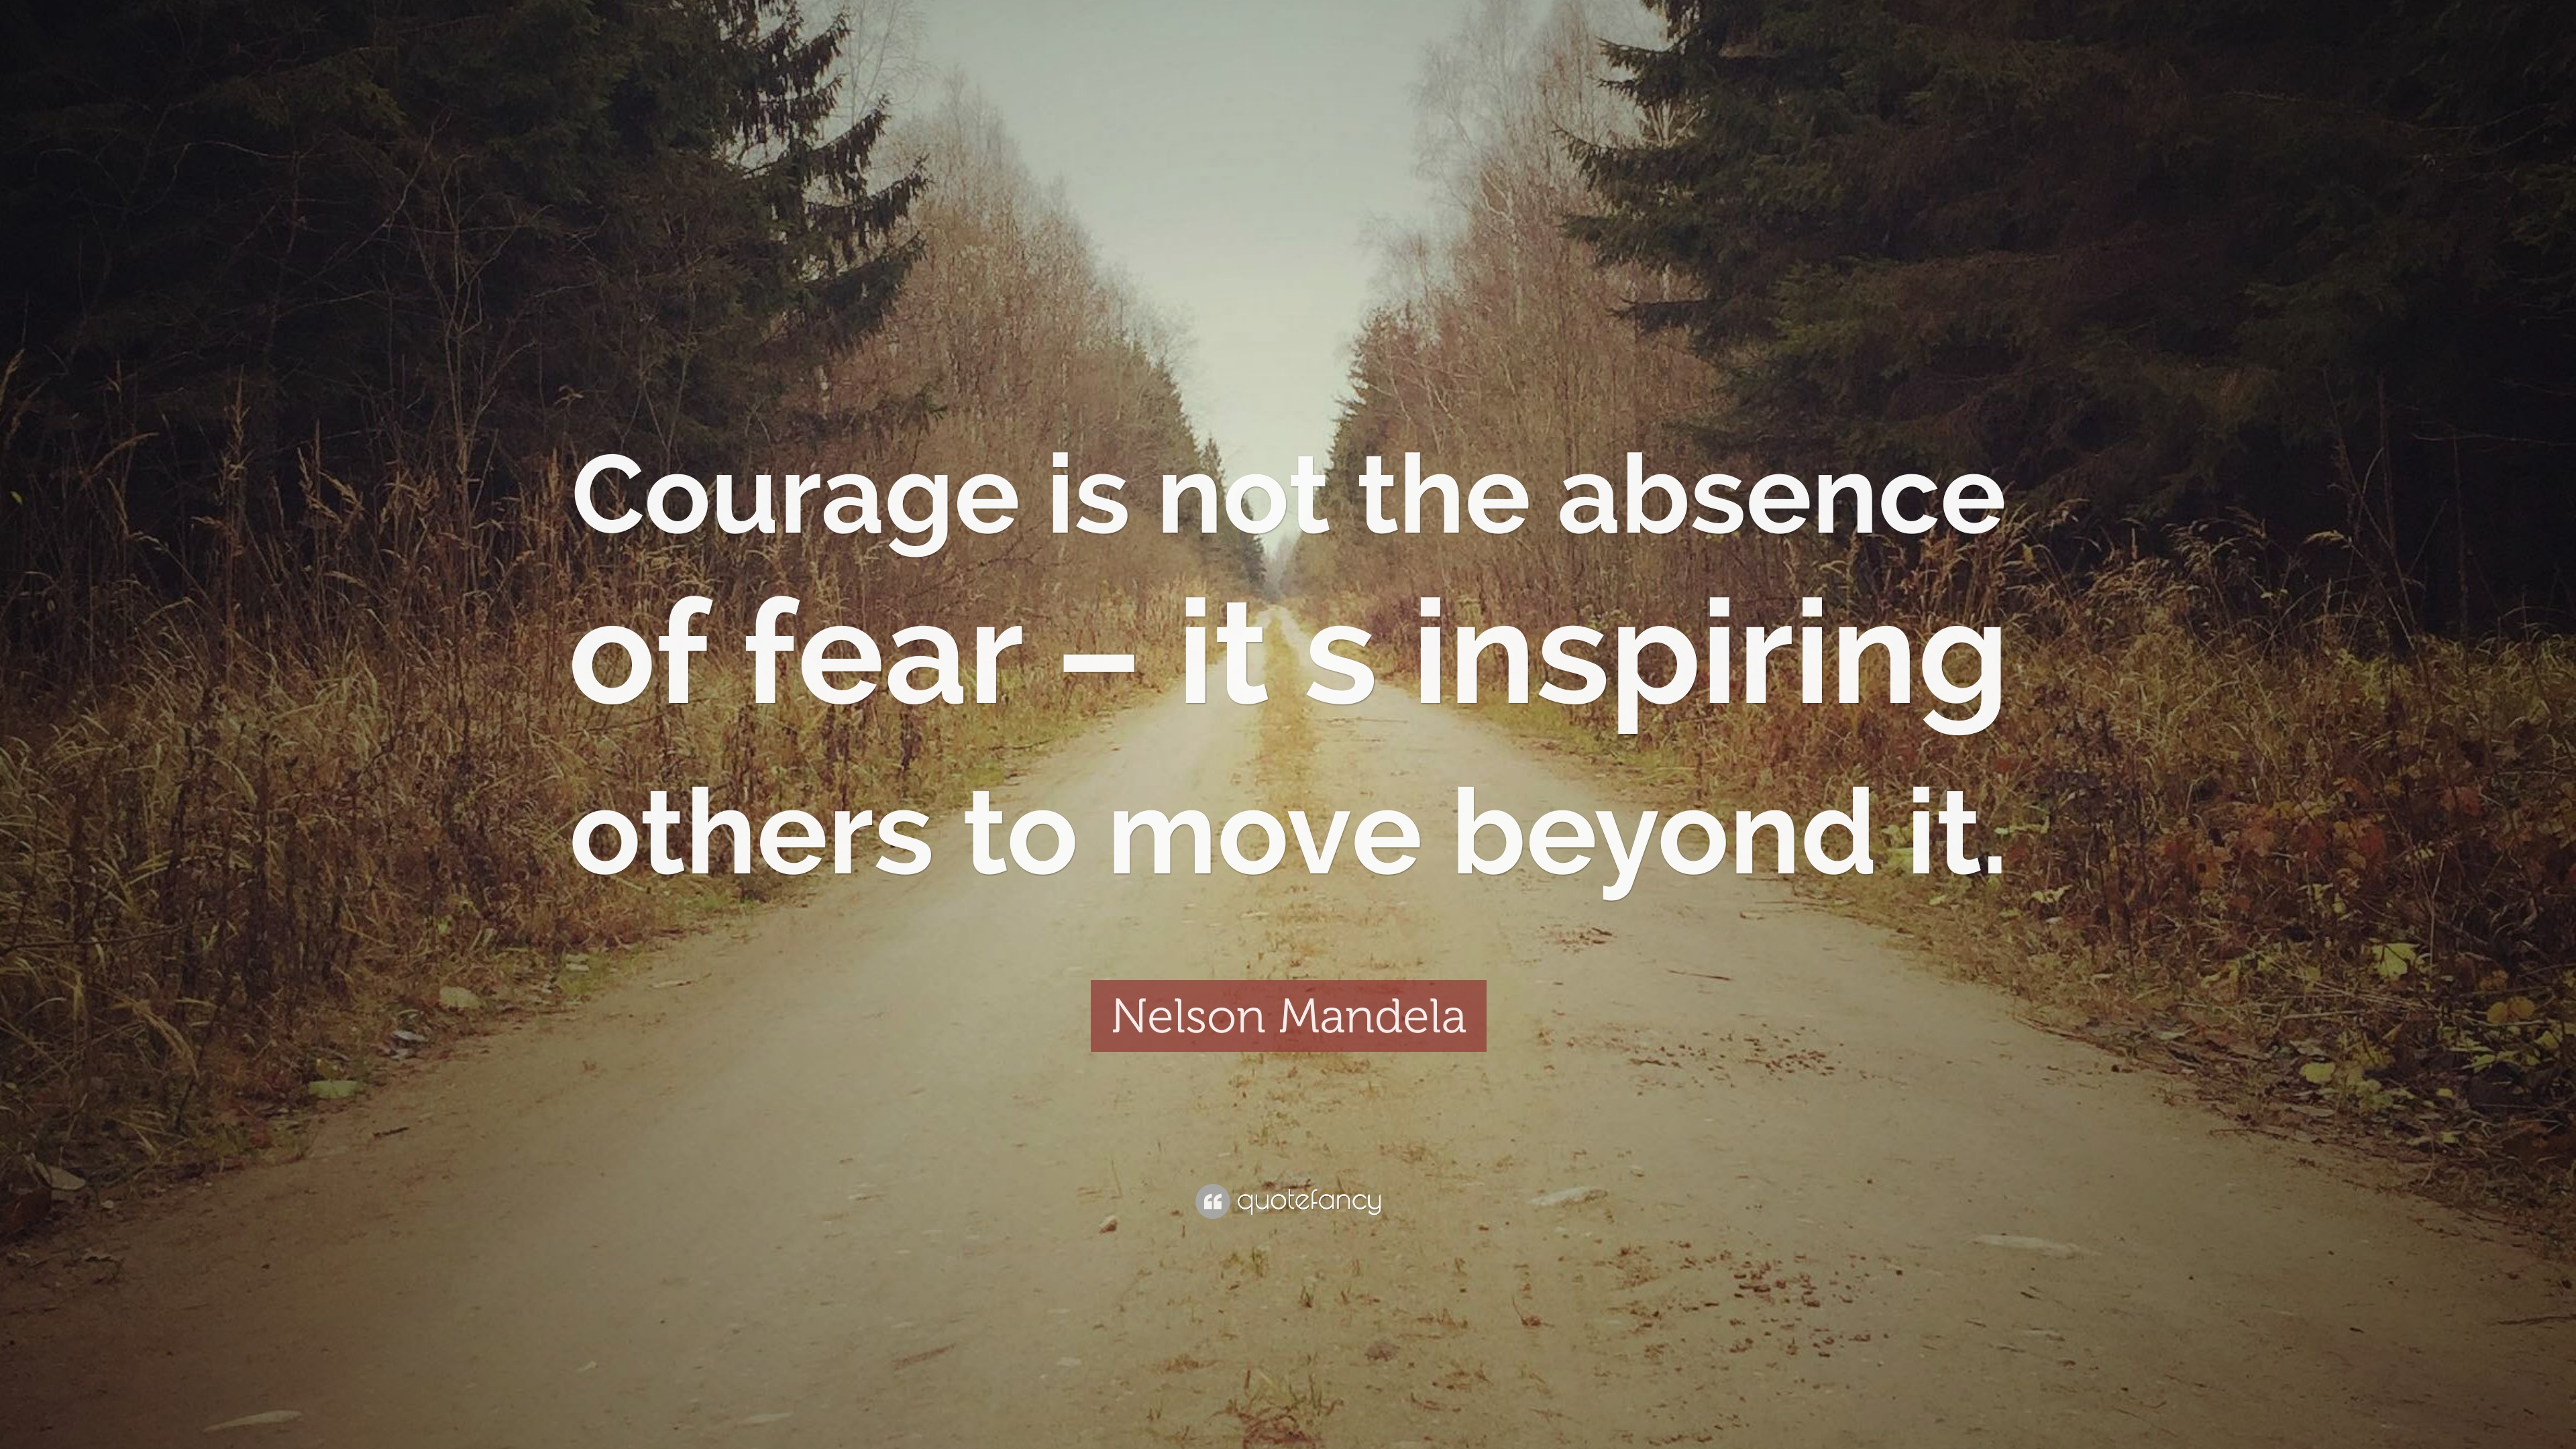 Nelson Mandela Quote: U201cCourage Is Not The Absence Of Fear U2013 It S Inspiring